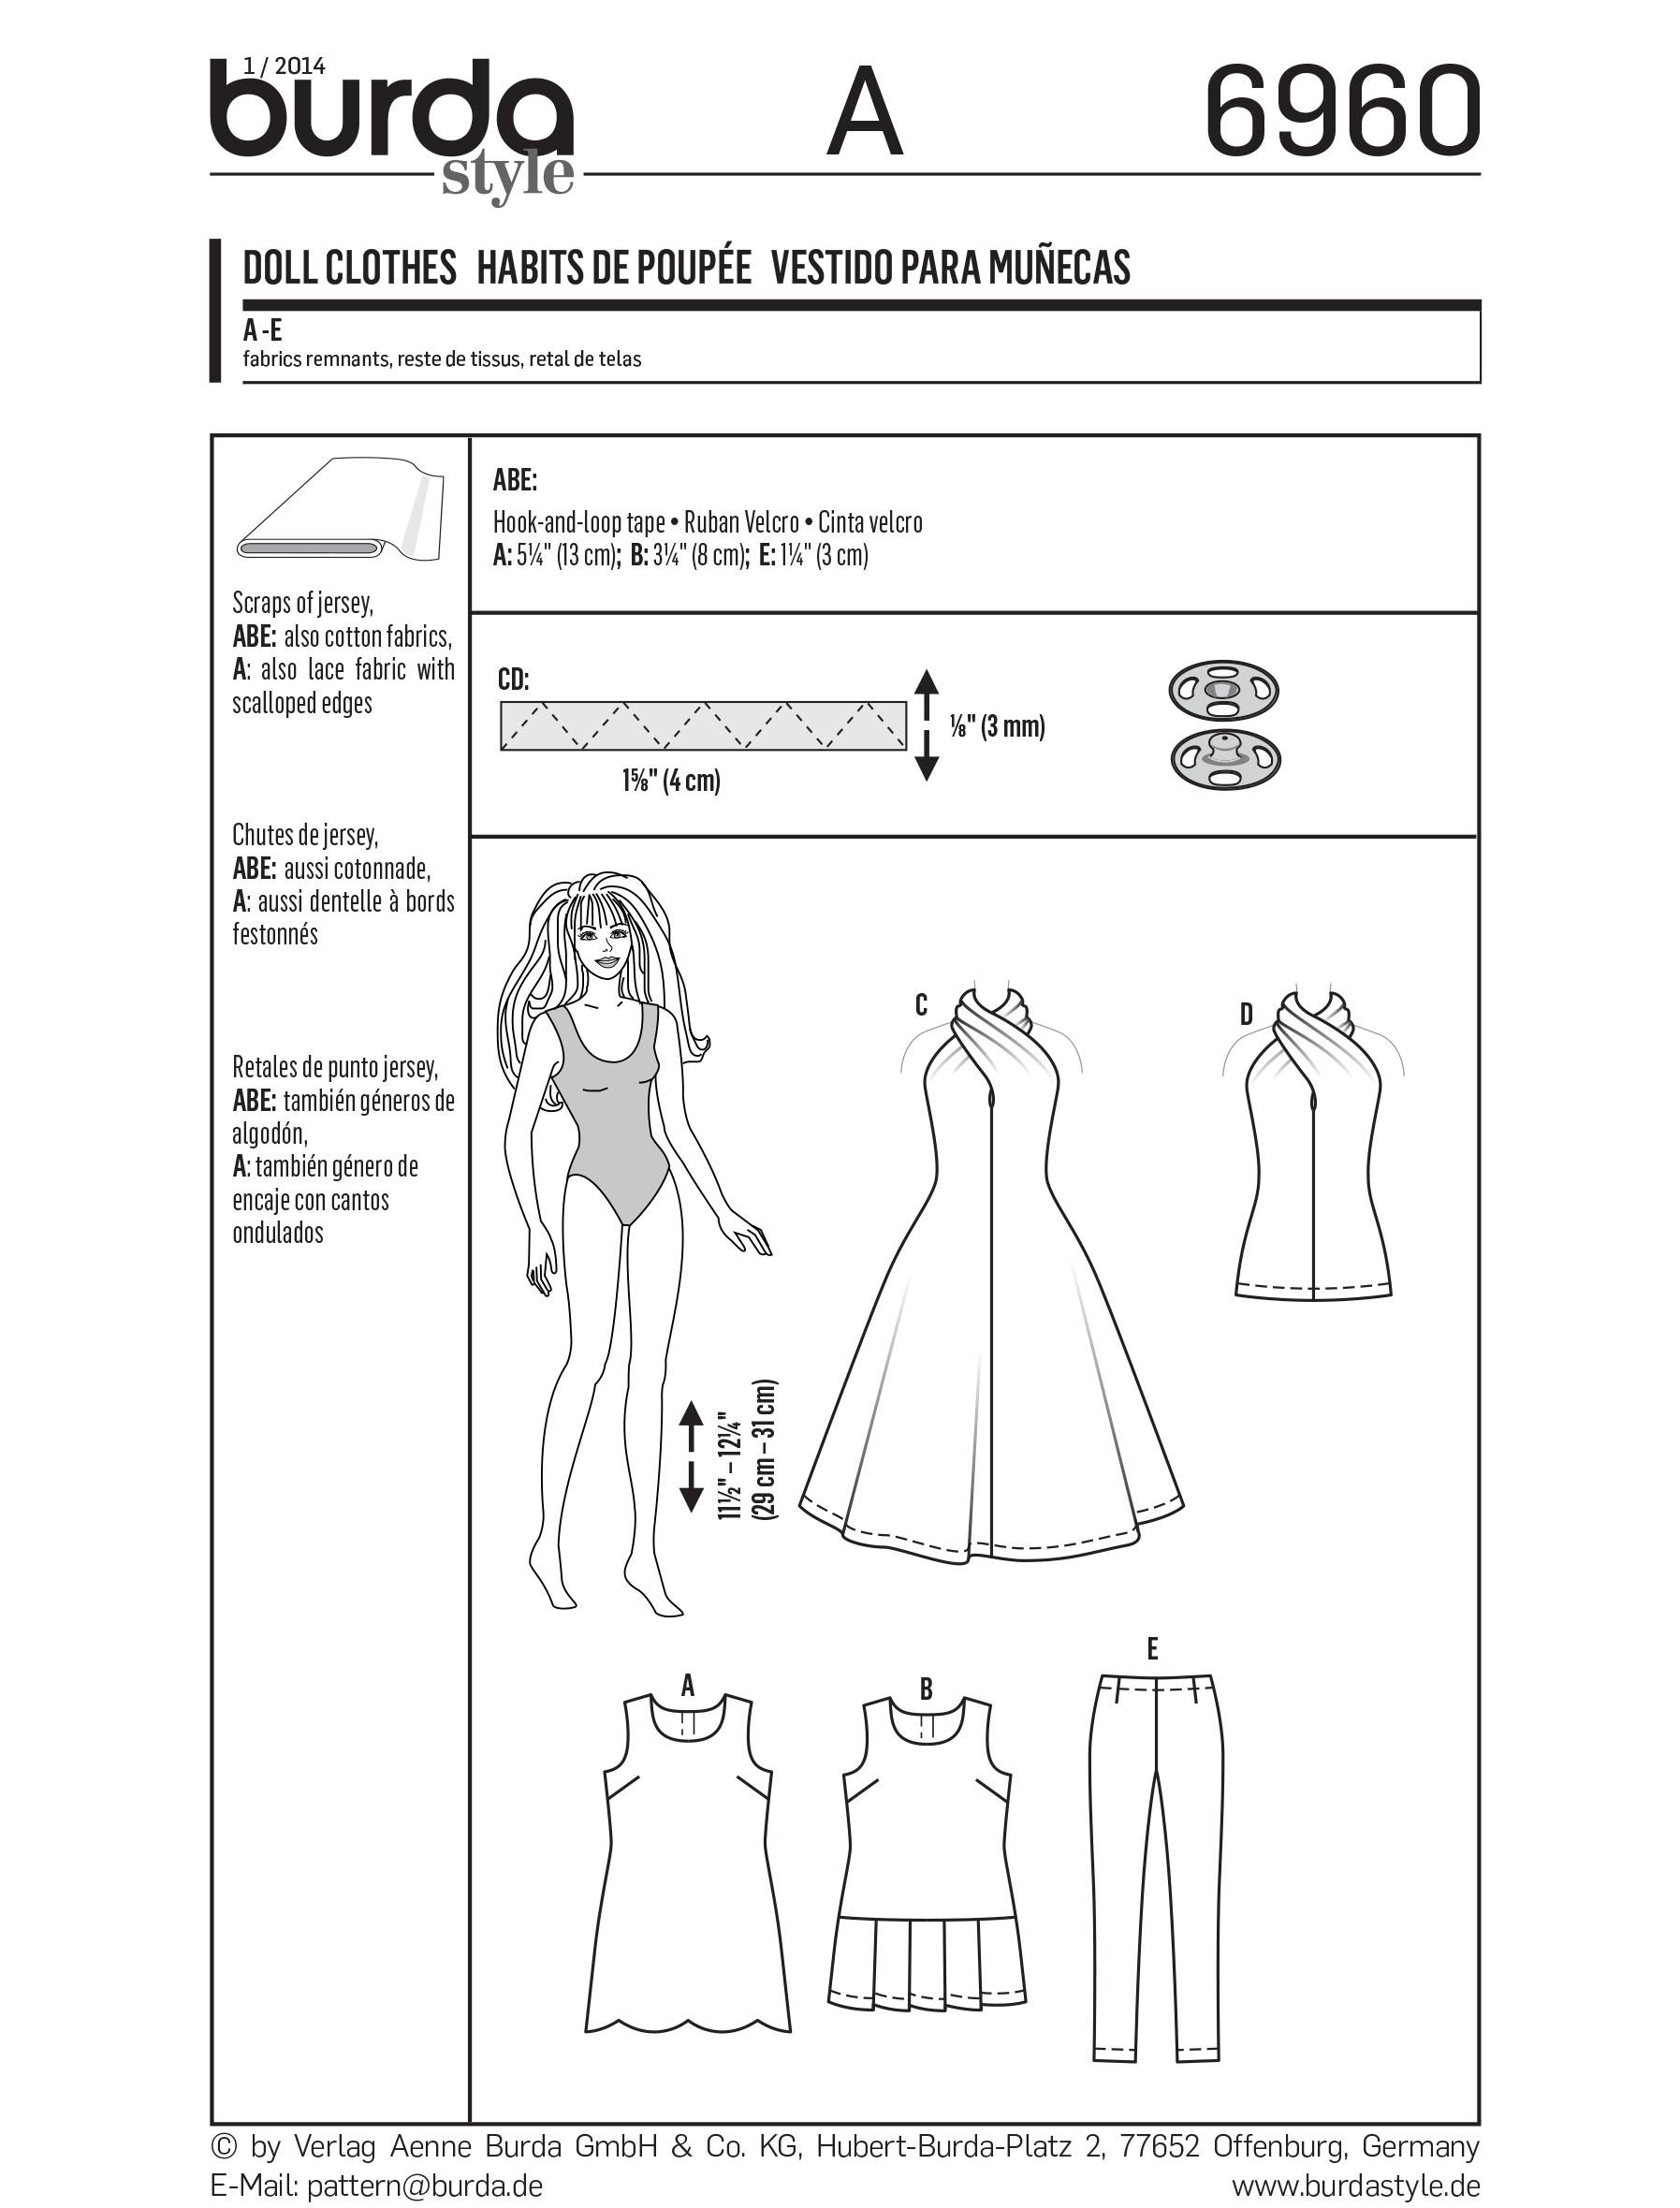 Burda B6960 Burda Doll Clothes, Accessories Sewing Pattern